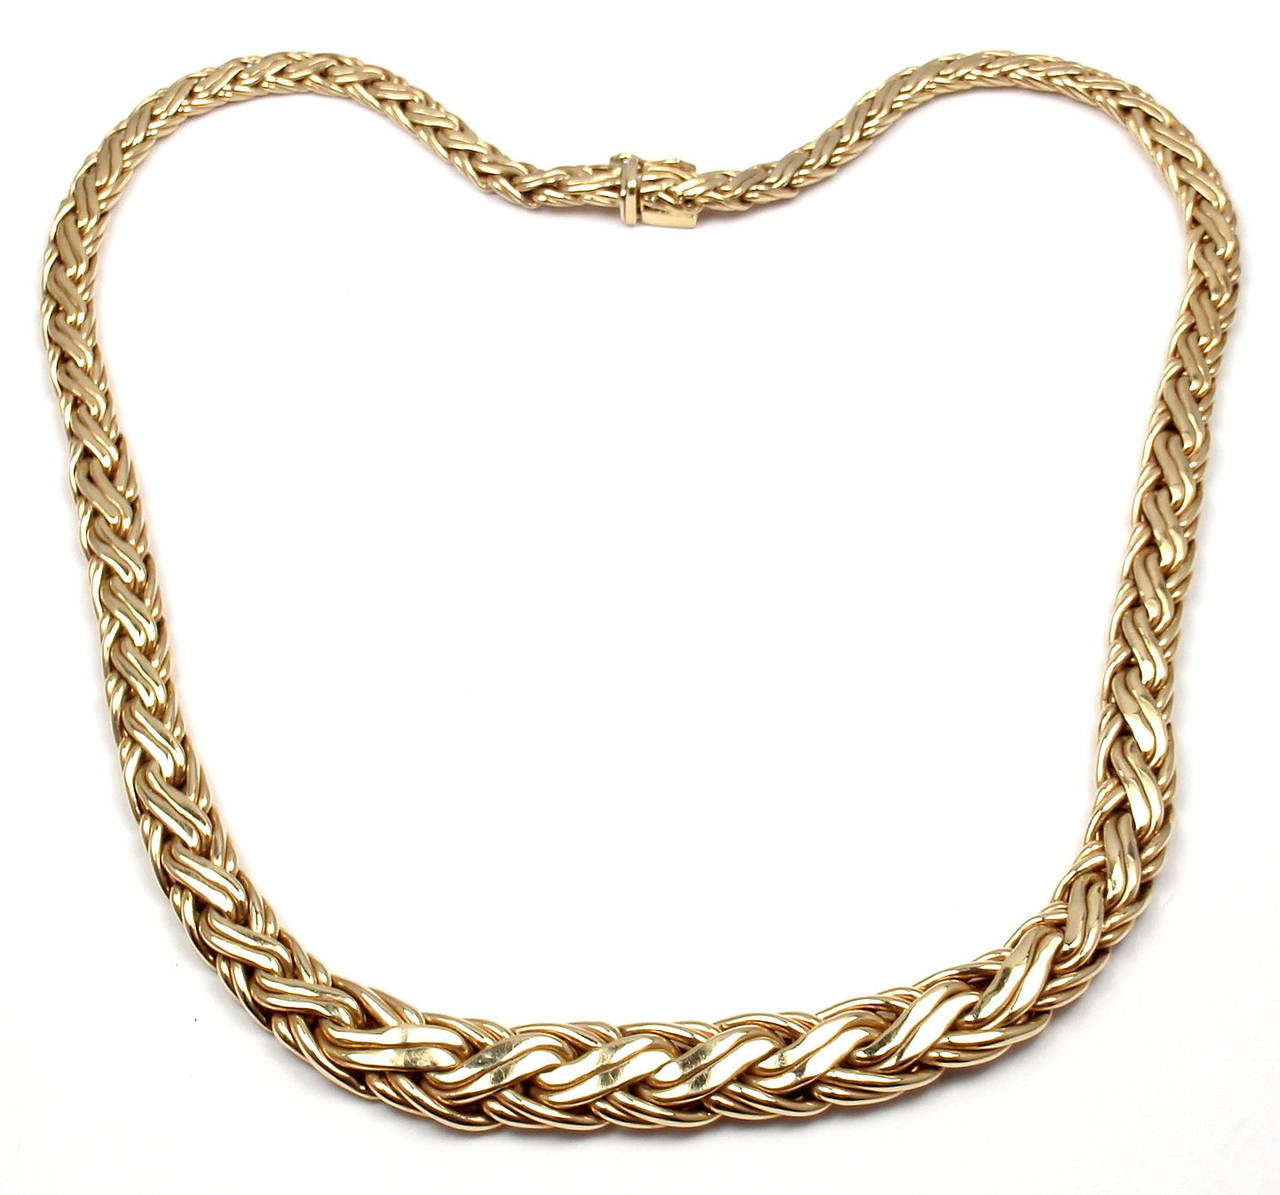 image rope one products choker product chain necklace weave store random womens